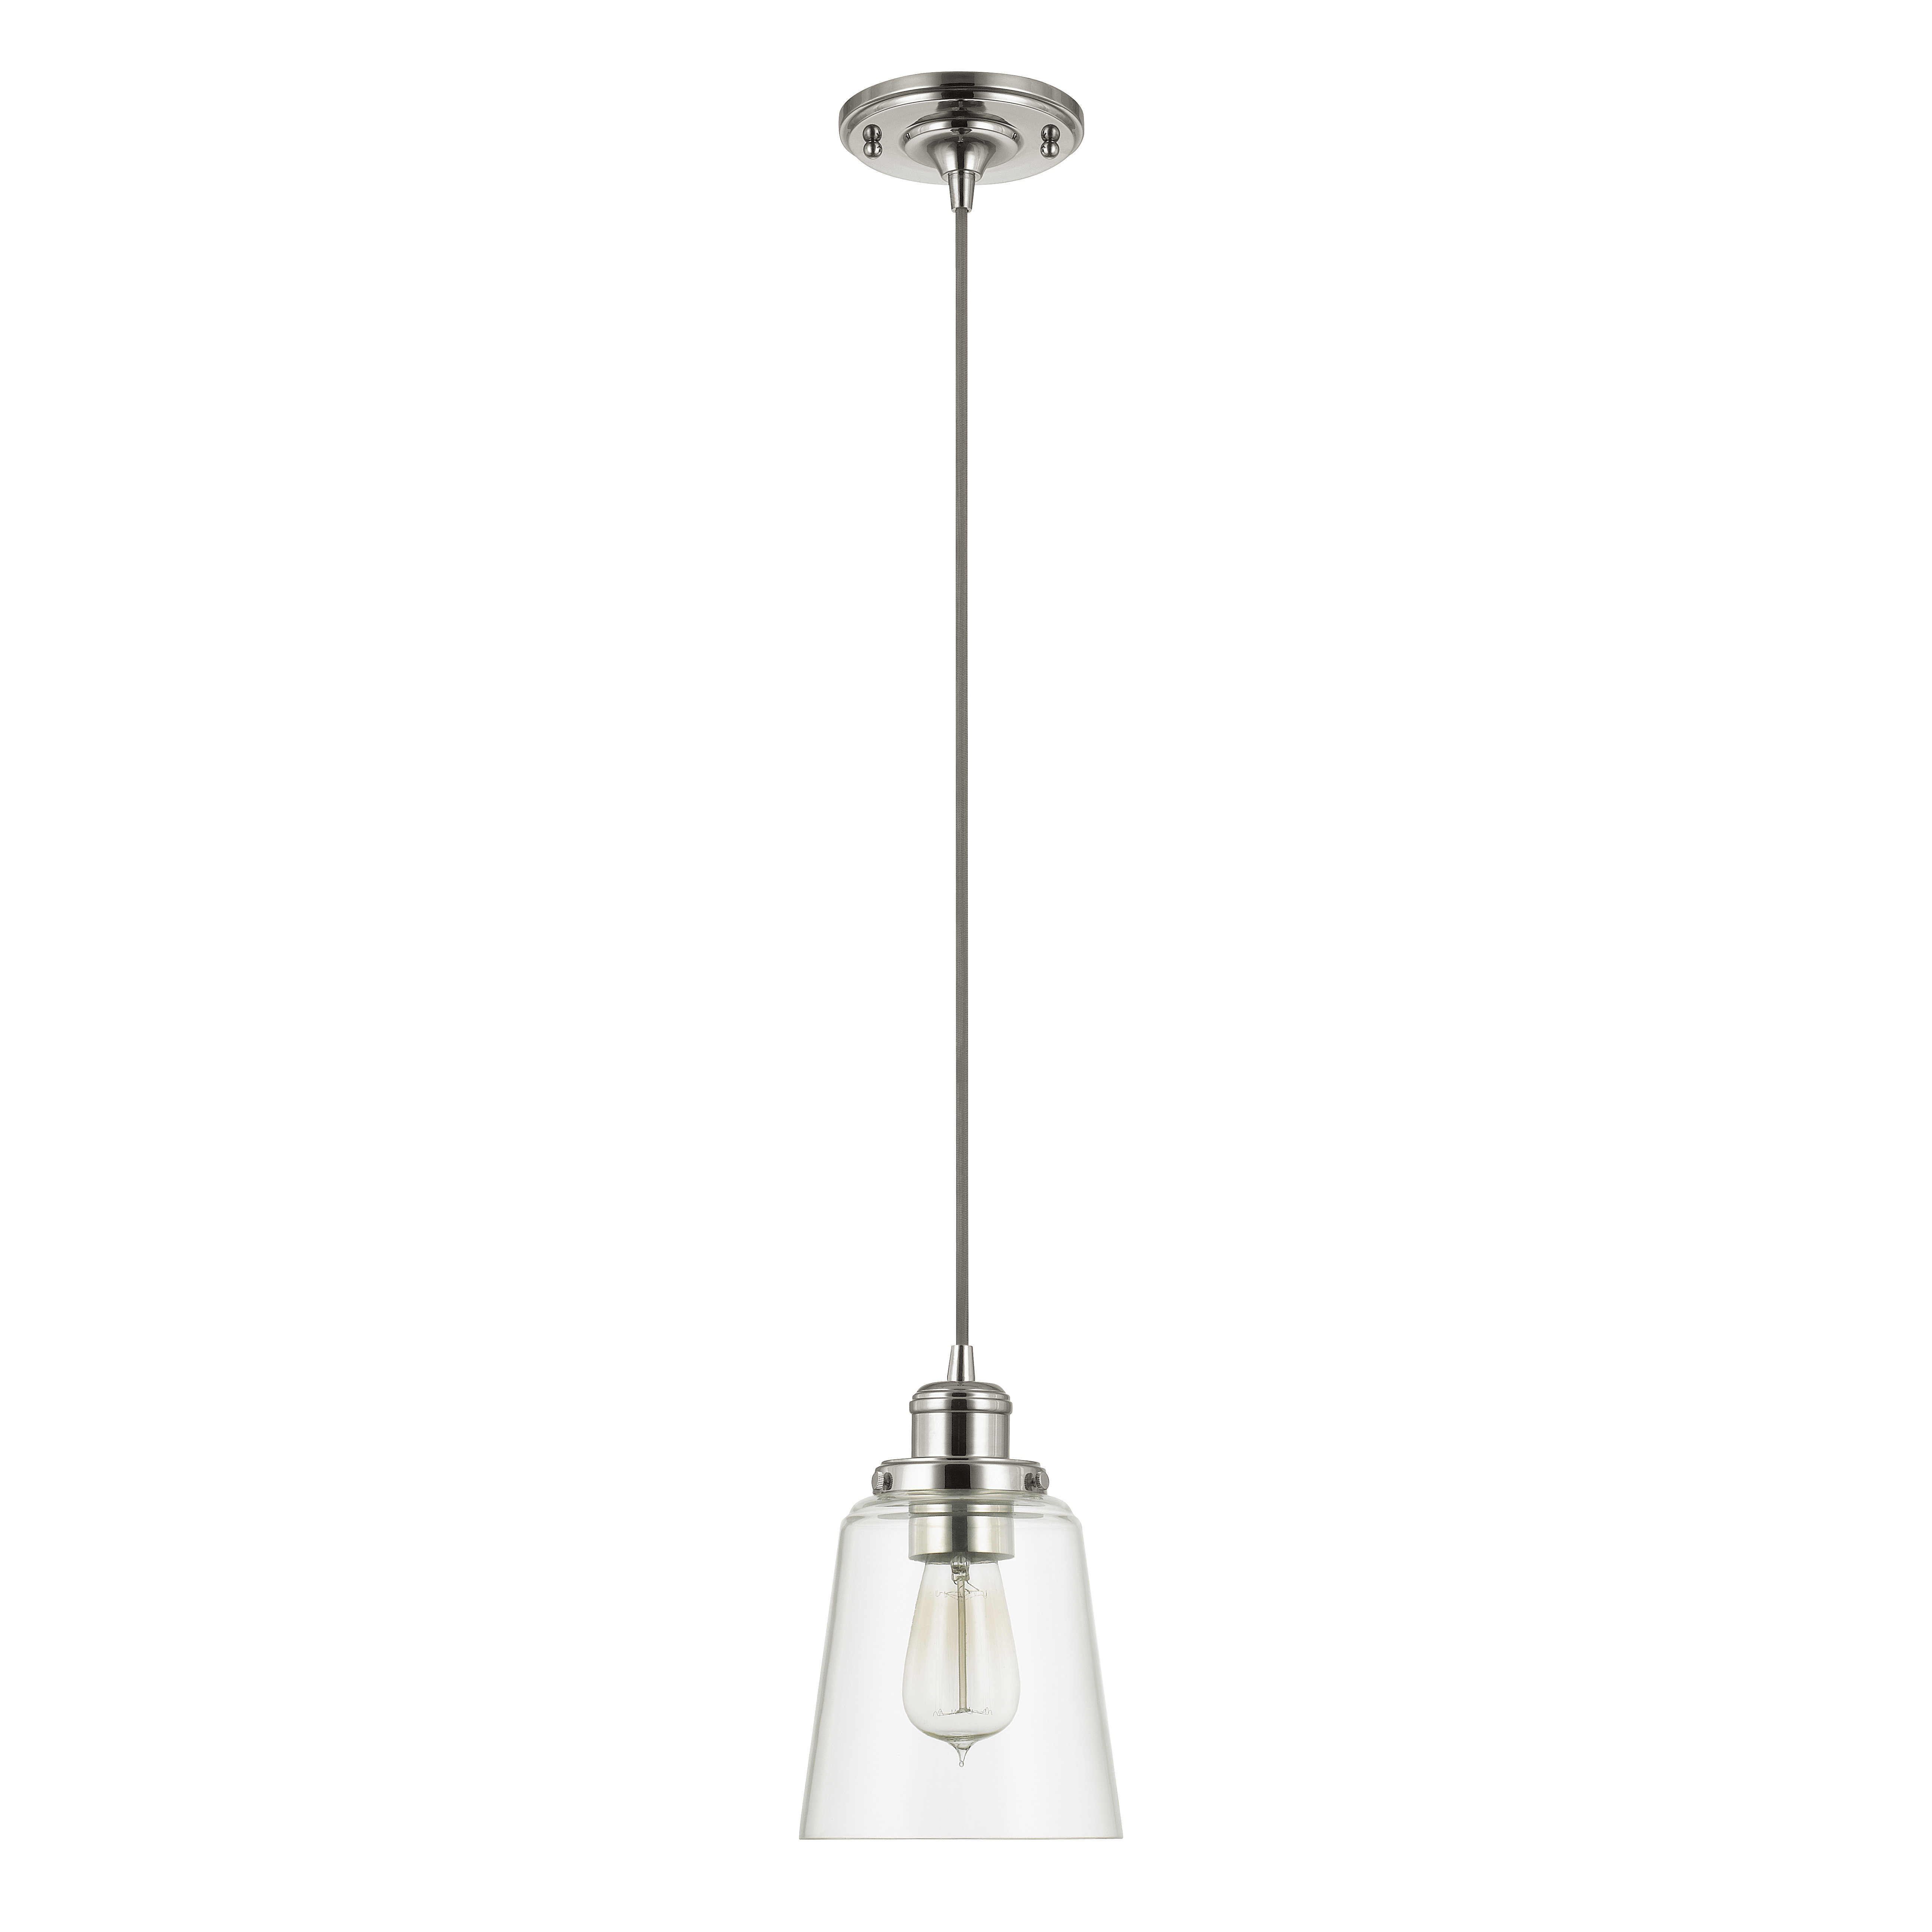 1 Light Single Bell Pendant Pertaining To Houon 1 Light Cone Bell Pendants (Gallery 17 of 30)